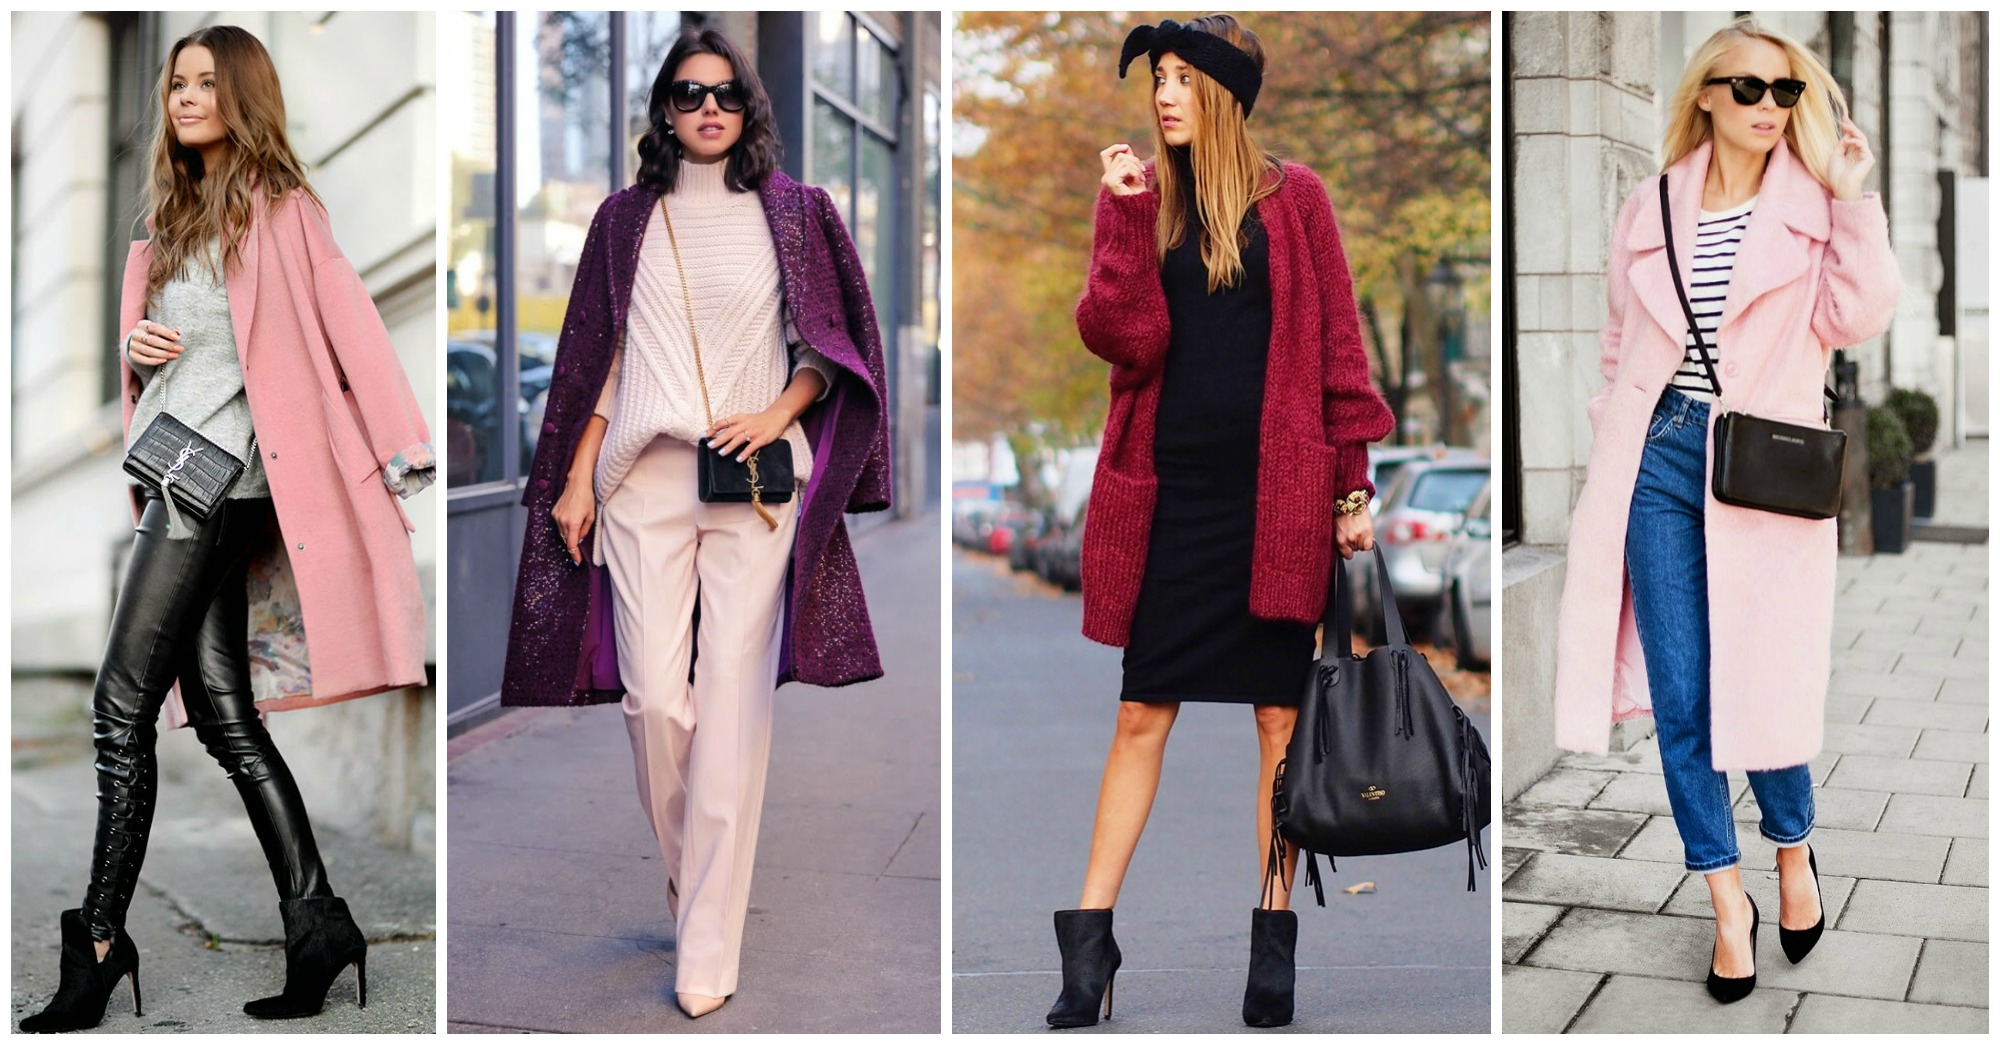 Classy and Elegant Street Style Outfits to Wear Now